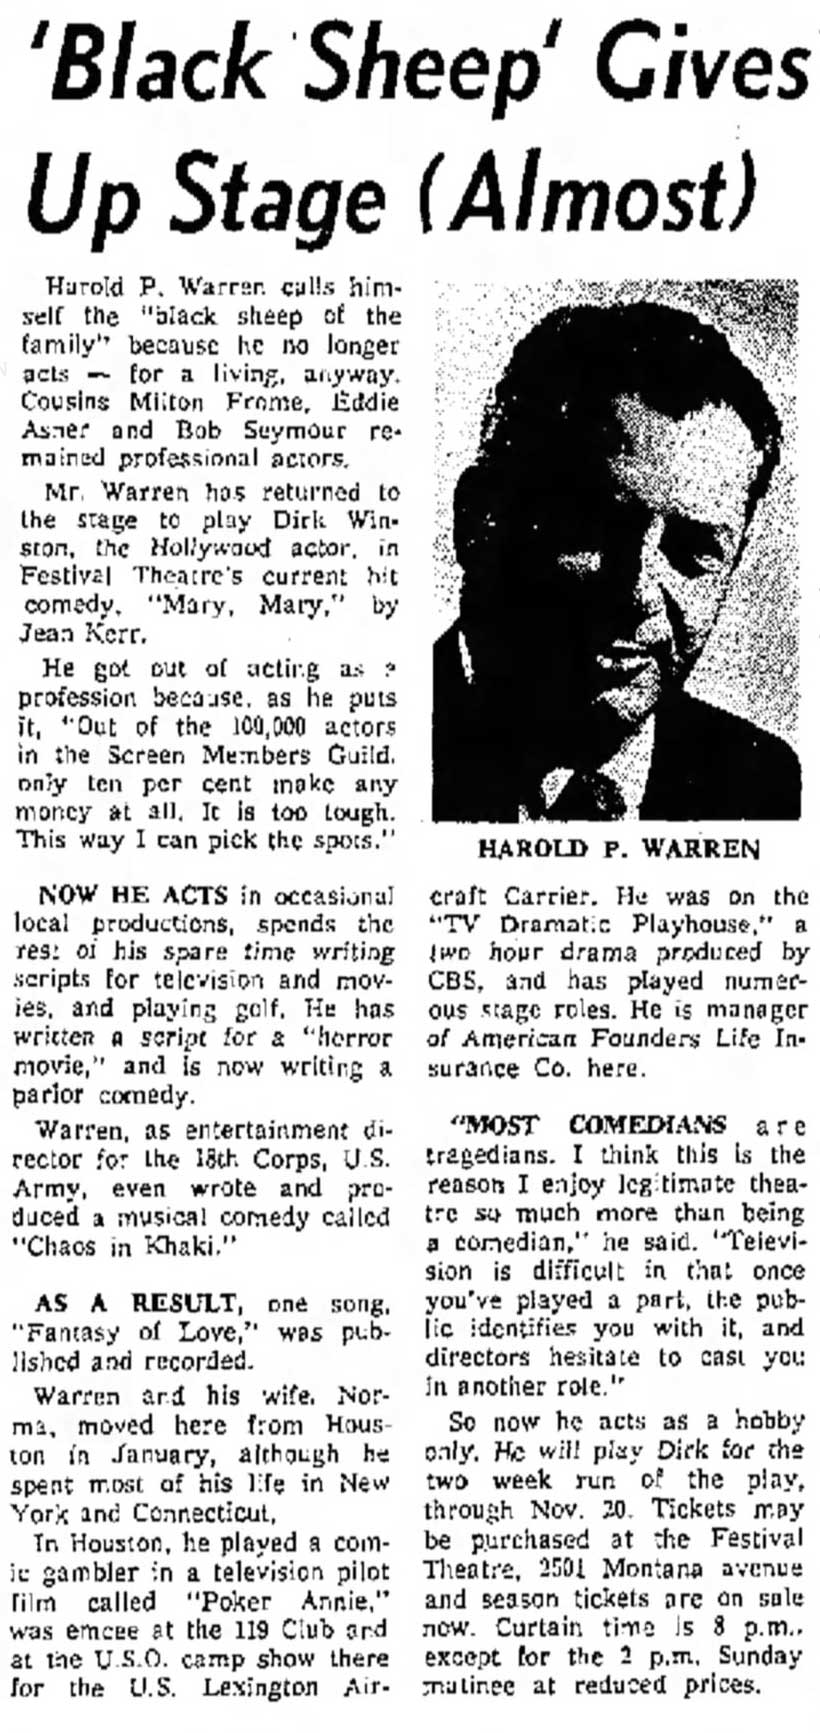 Harold P. Warren - 'Black Sheep' Gives Up Stage (Almost)